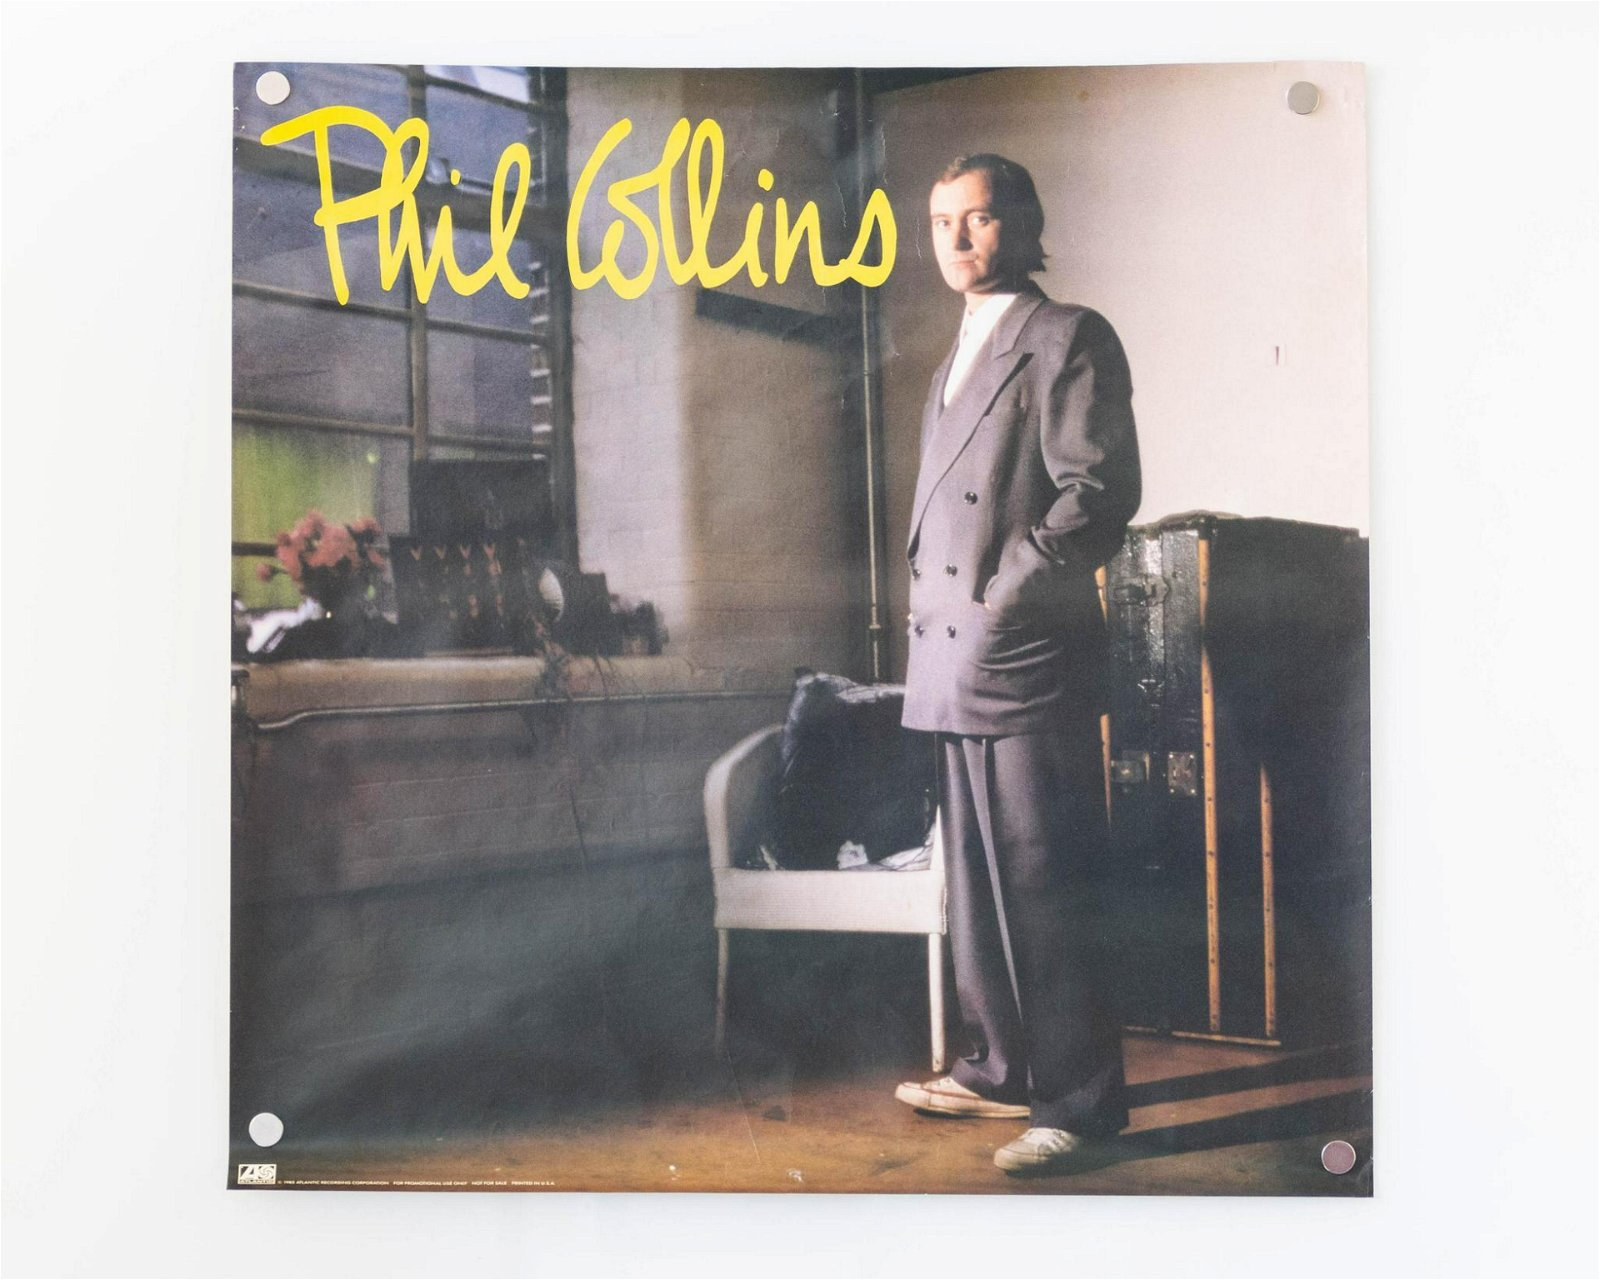 Lot of Two (2) Vintage Phil Collins Posters